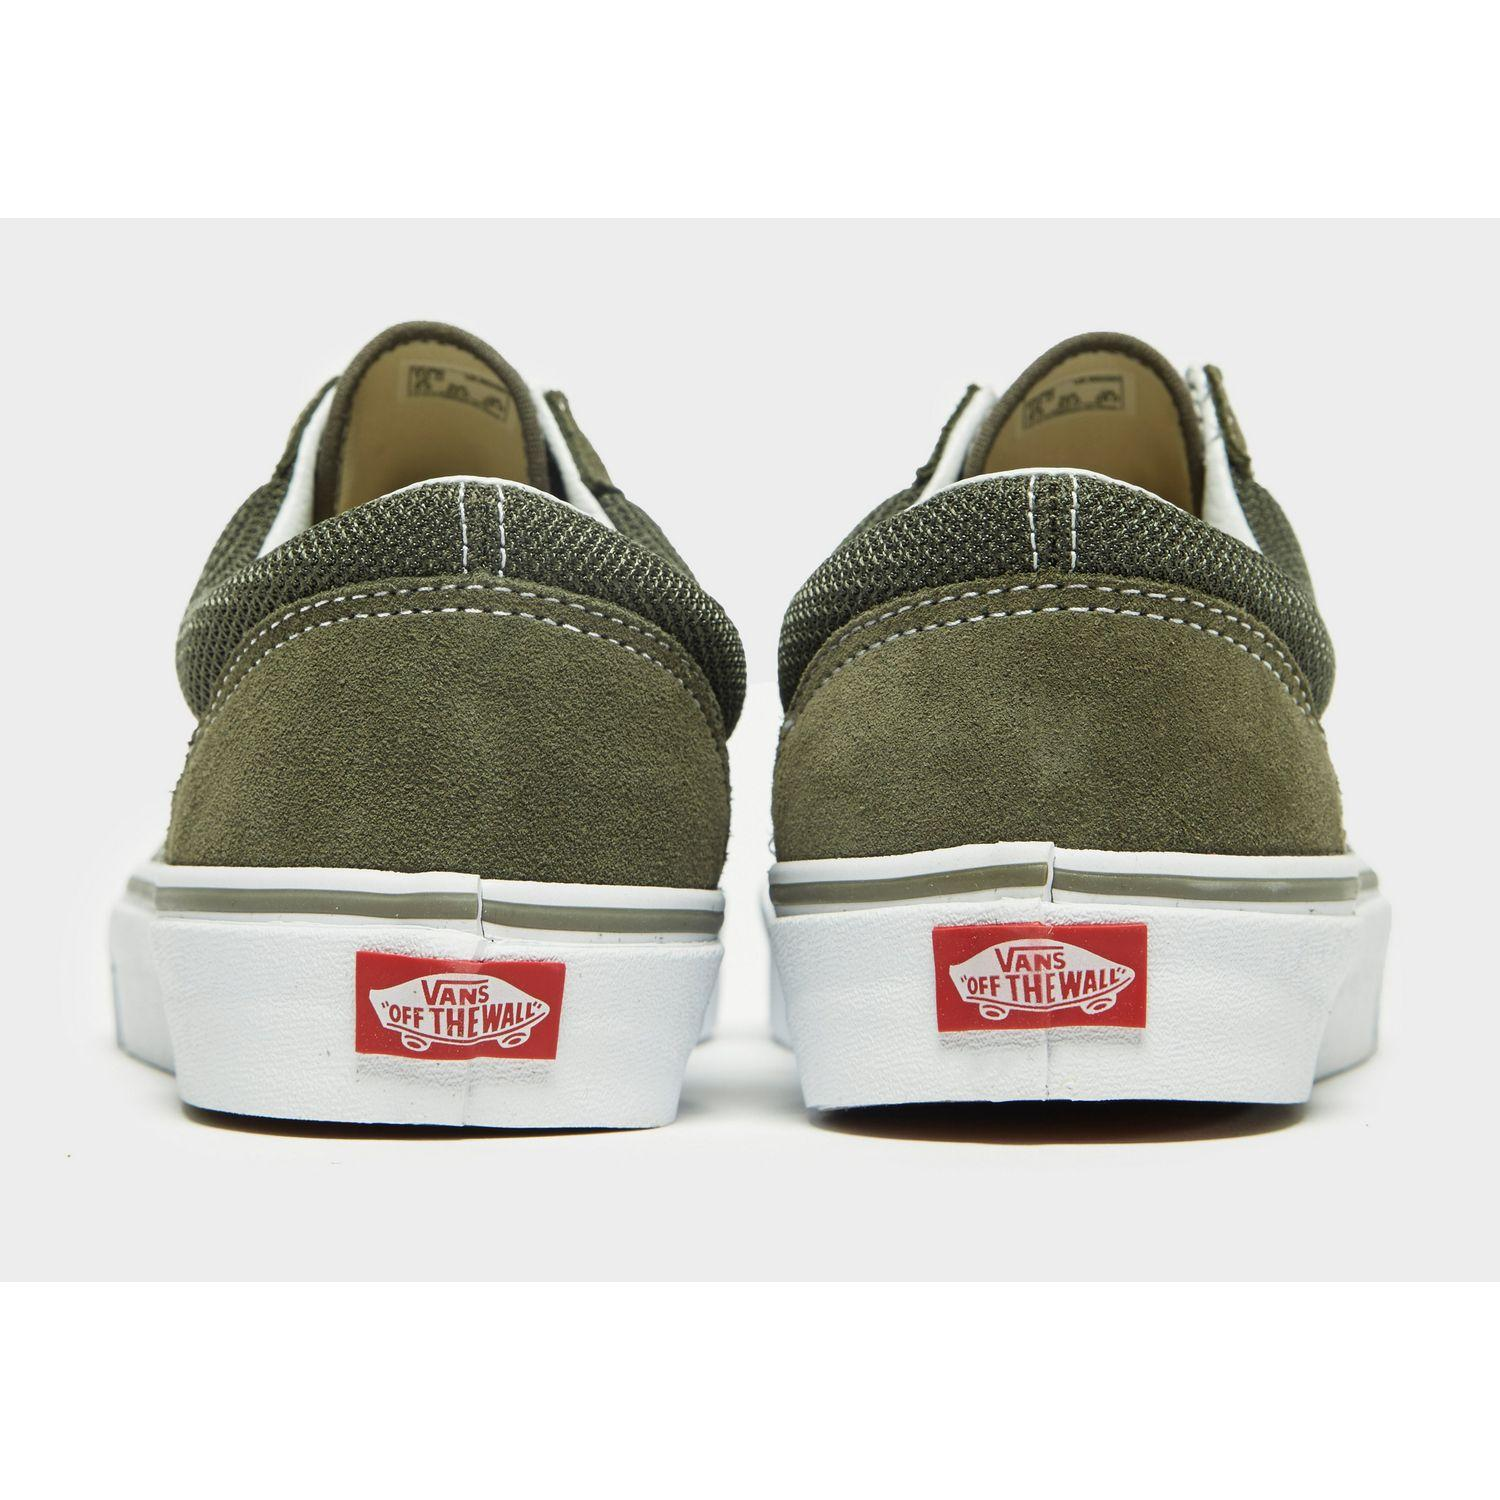 Vans Suede Style 36 Mesh in Green/White